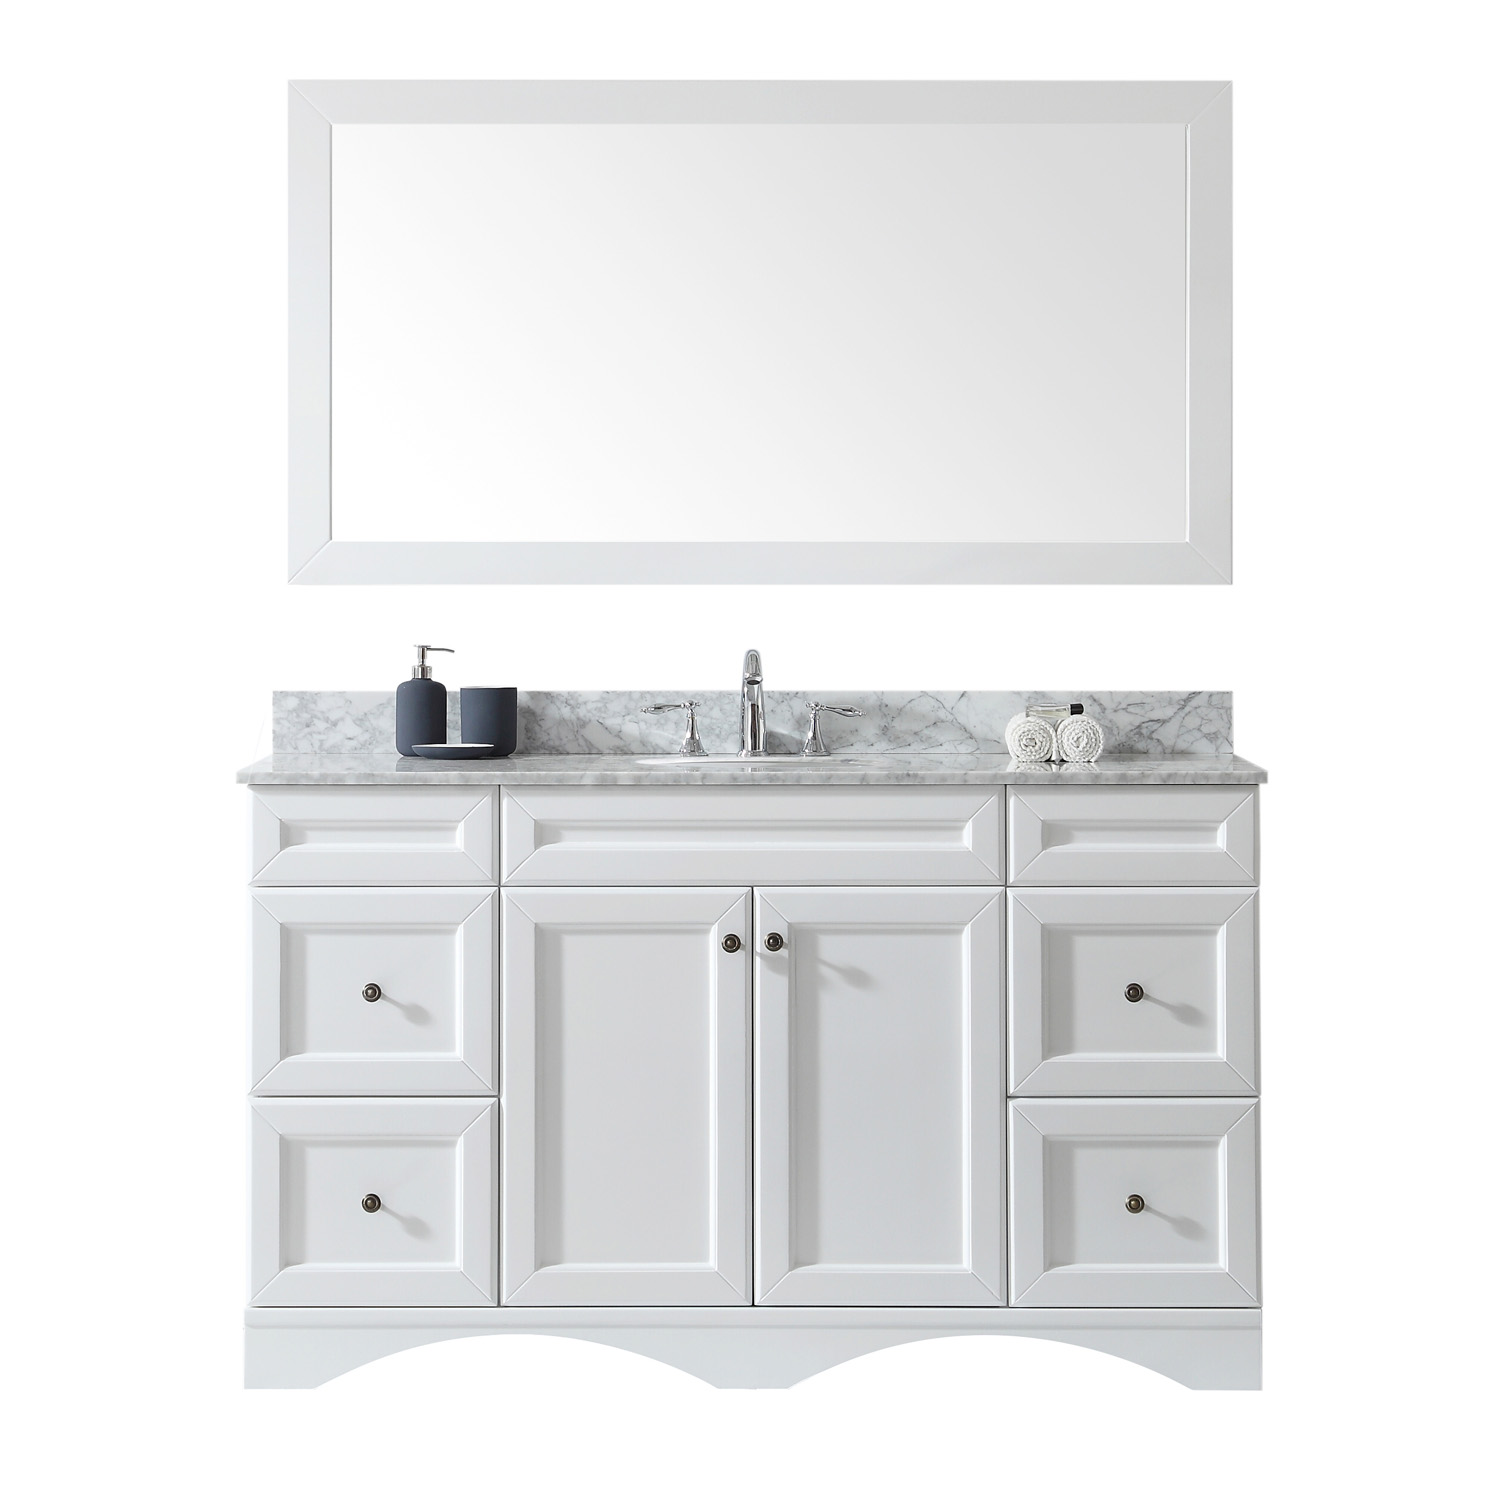 "60"" Single Bath Vanity in White with Marble Top and Round Sink with Faucet and Mirror Options"